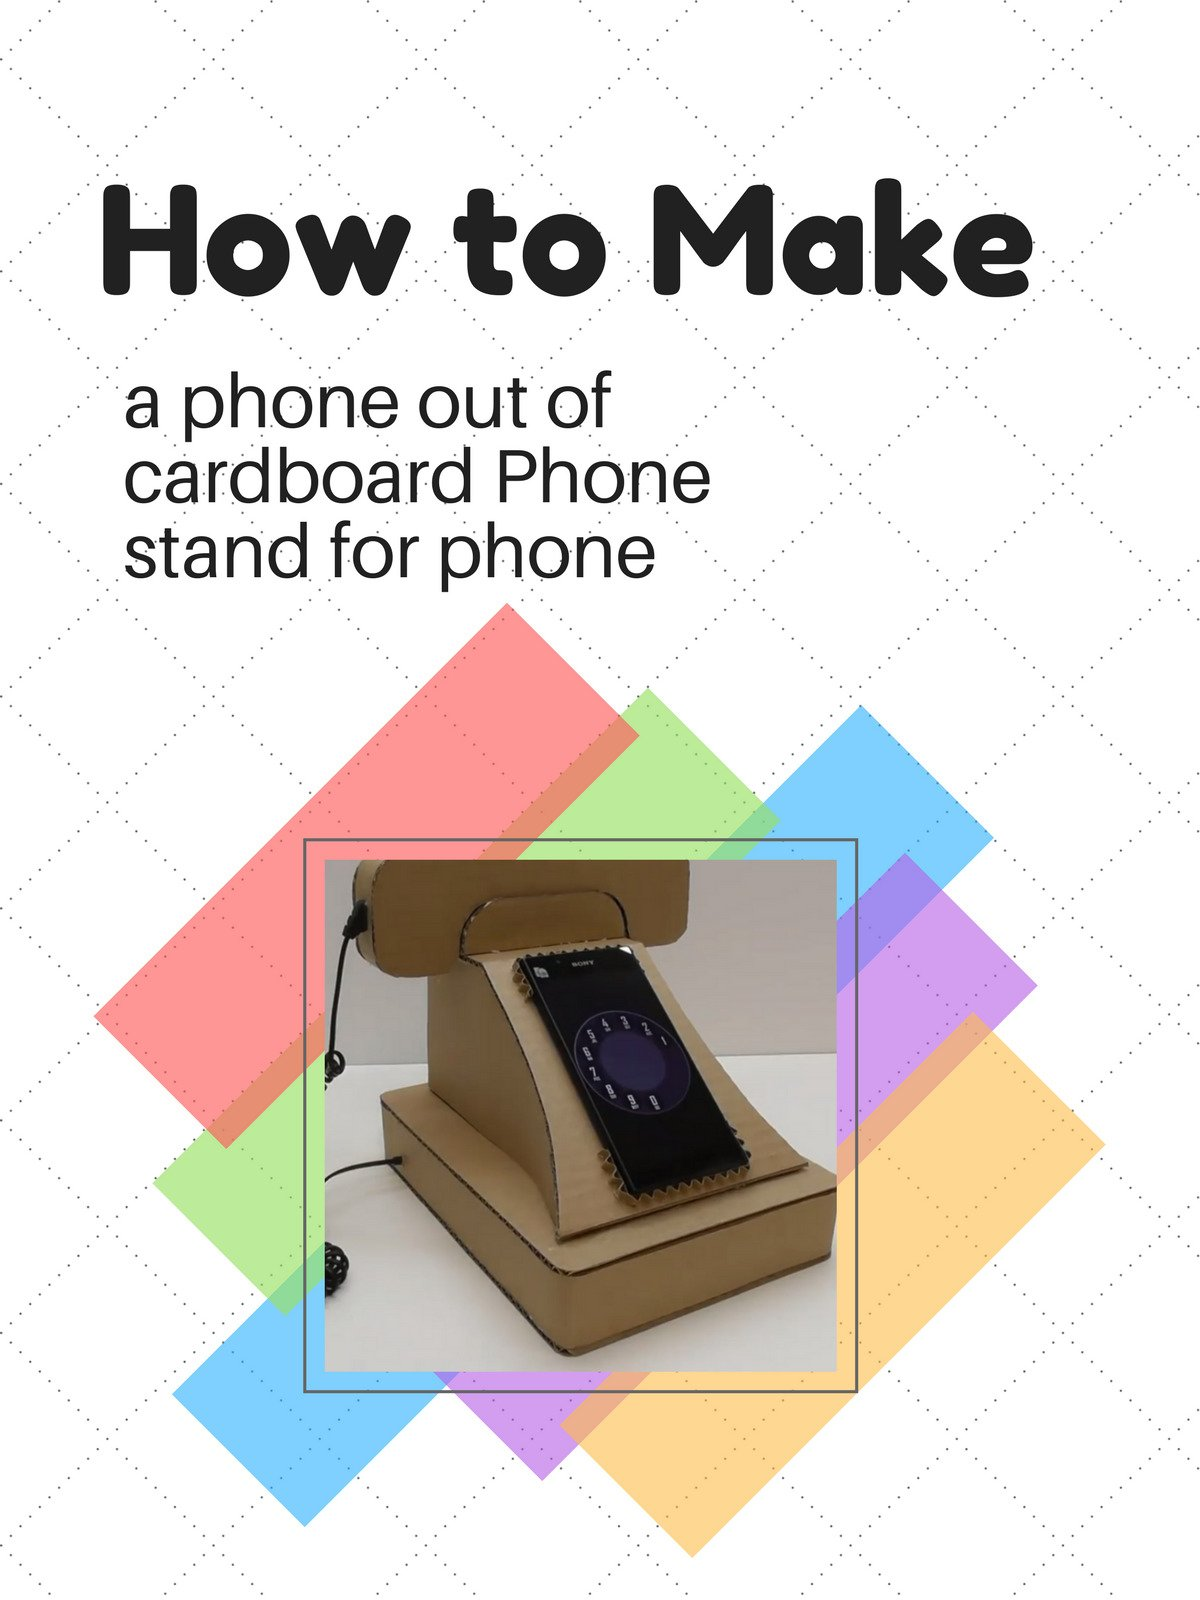 How to make a phone out of cardboard Phone stand for phone